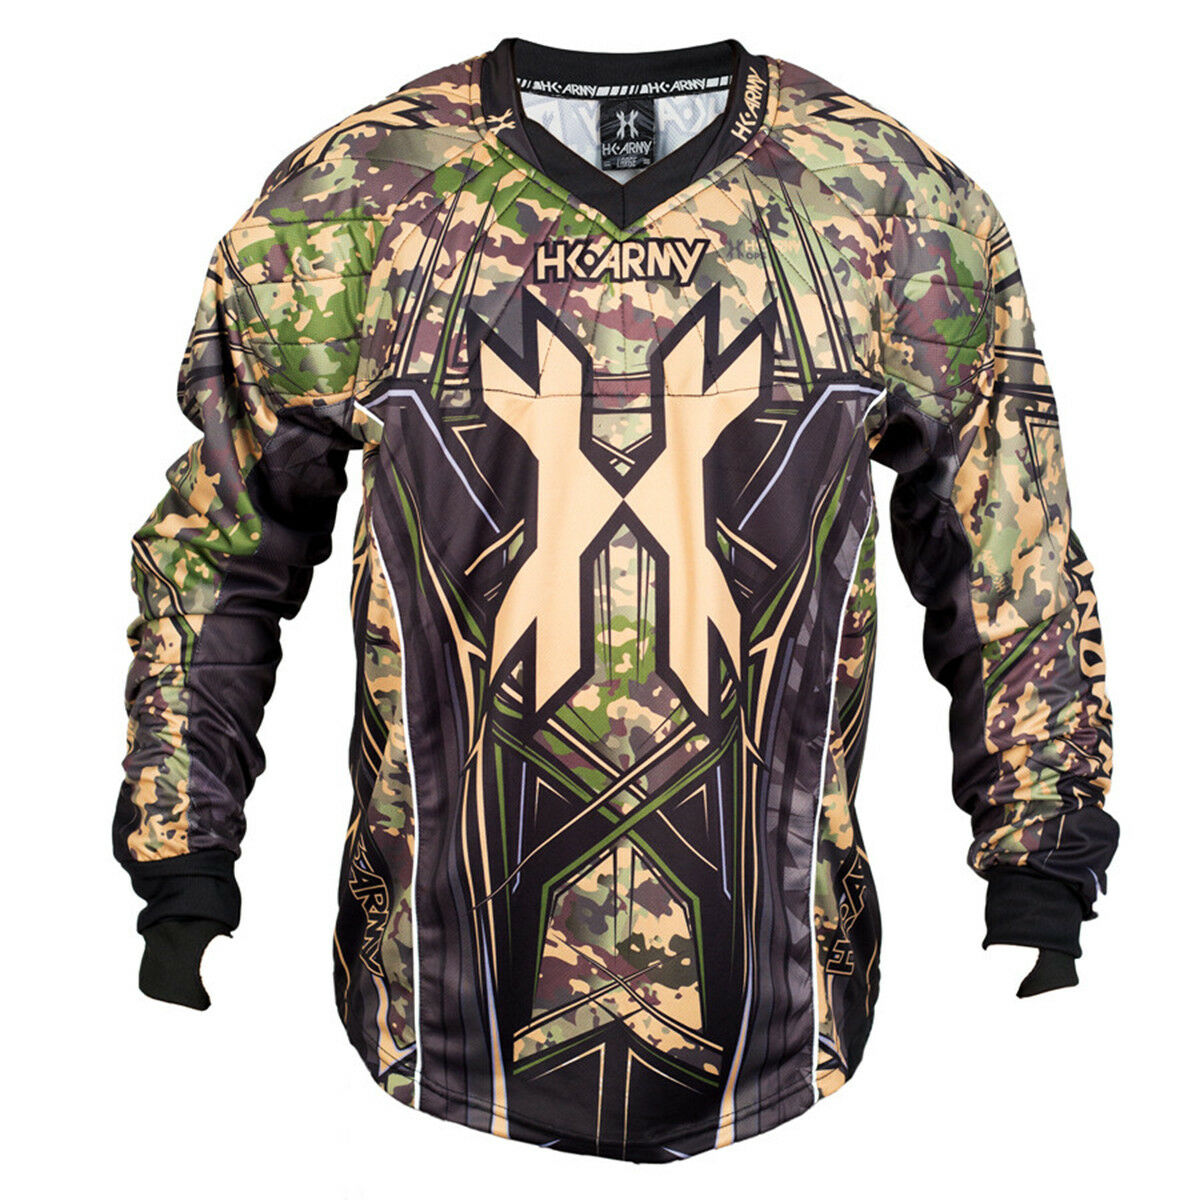 HK Army HSTL Line Paintball Jersey - Camo - Youth